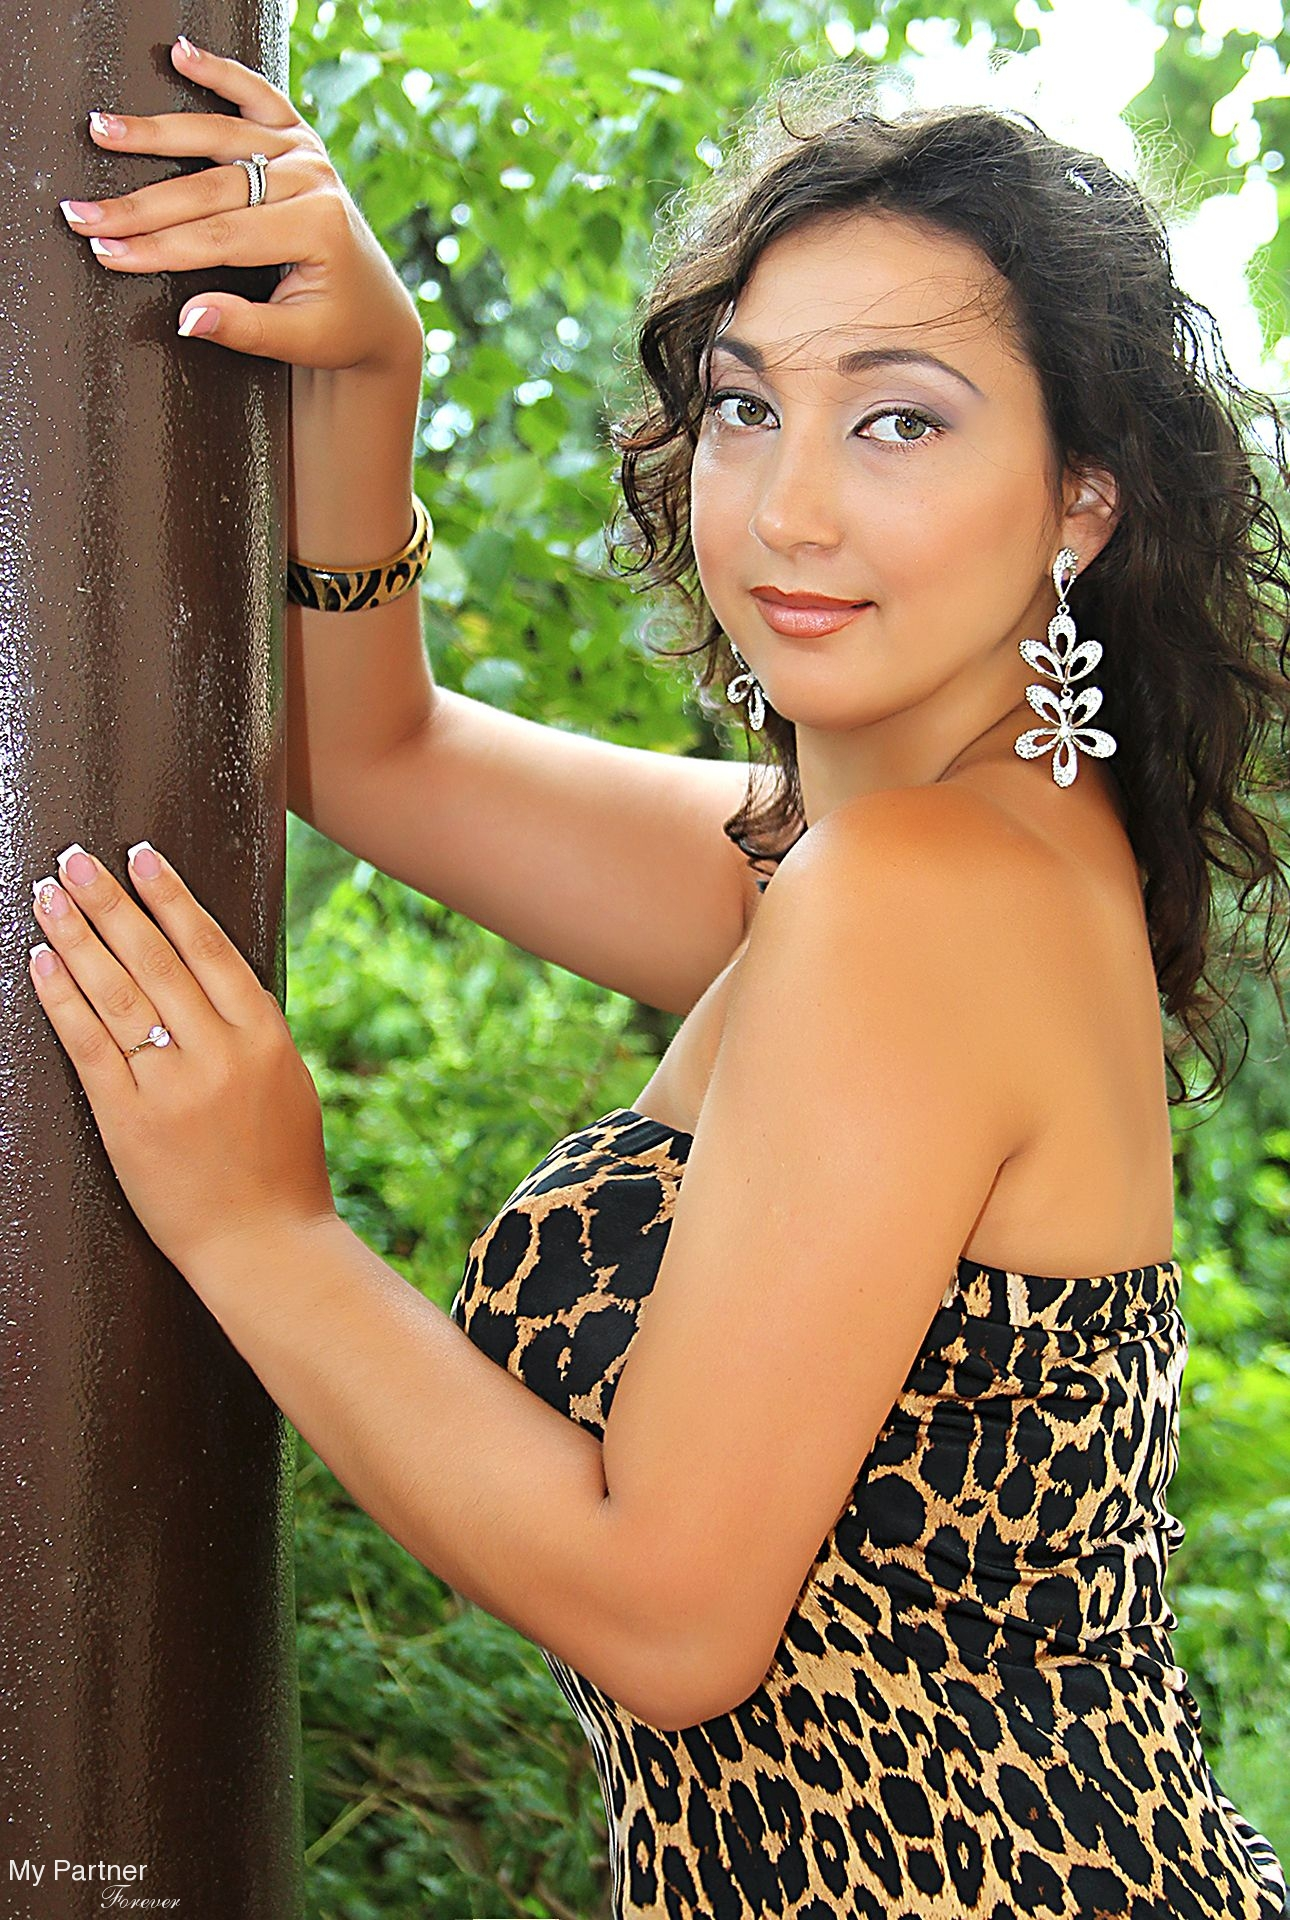 cyprus dating service